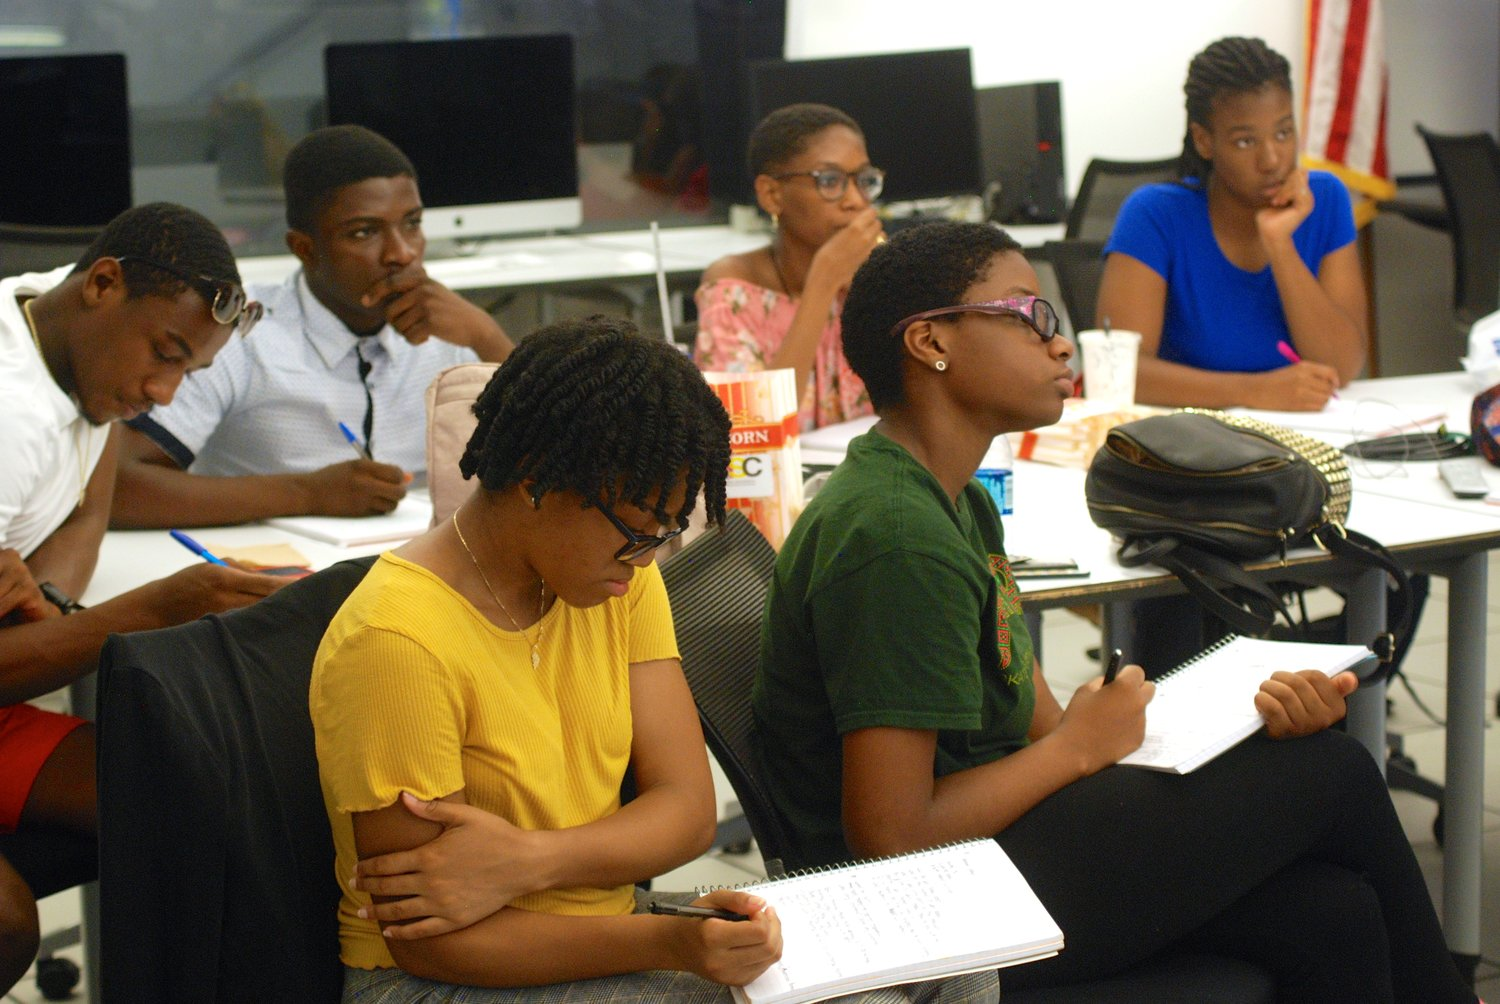 Participants taking notes during Otterman's presentation. Students came to the Summer Institute from Elmont and Freeport high schools.